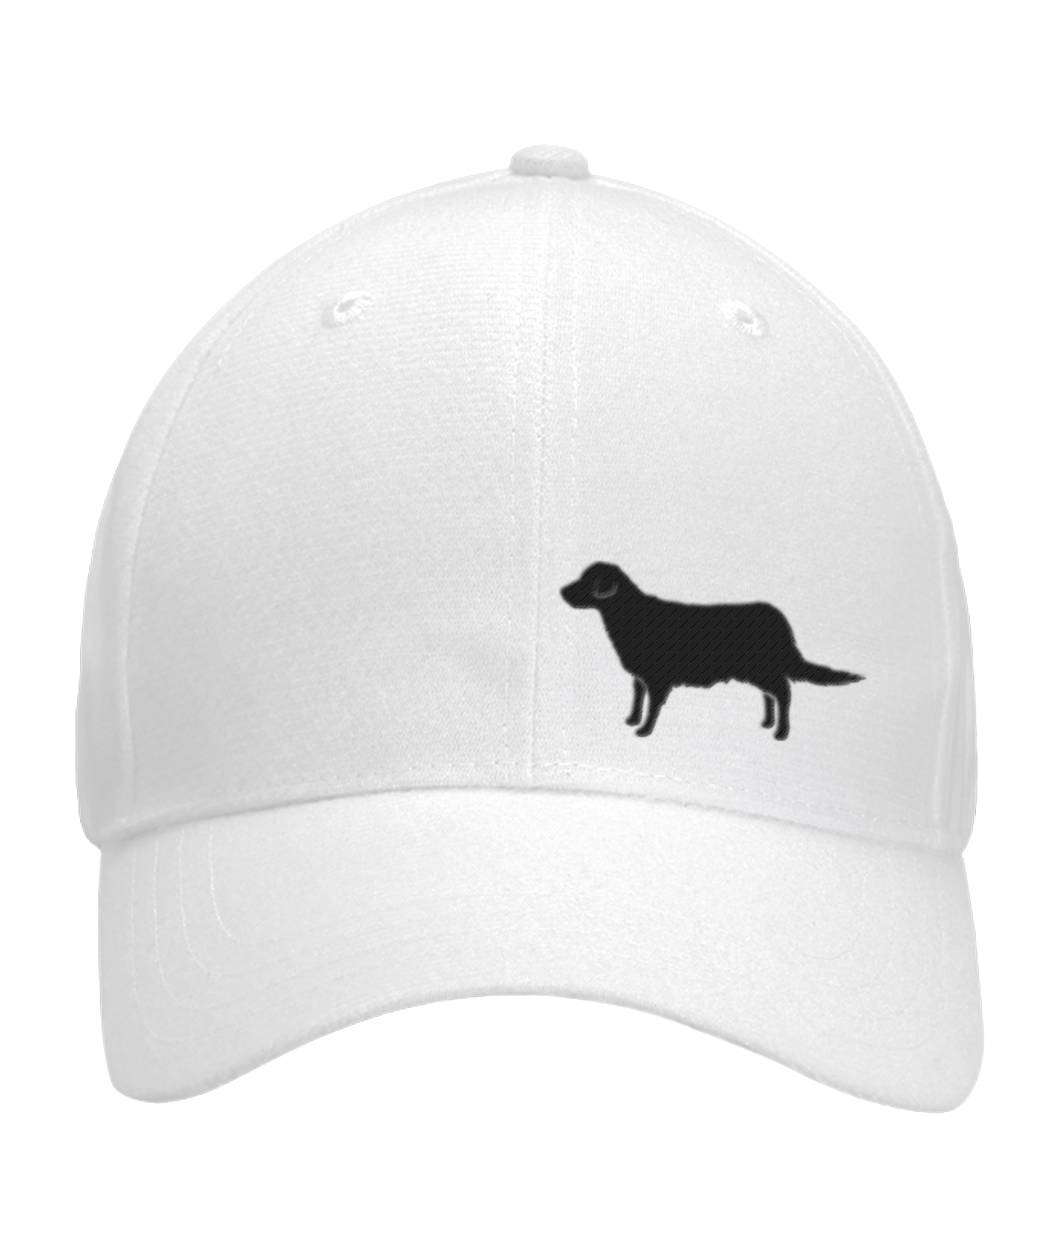 Golden Retriever, Embroidered Fitted Cap